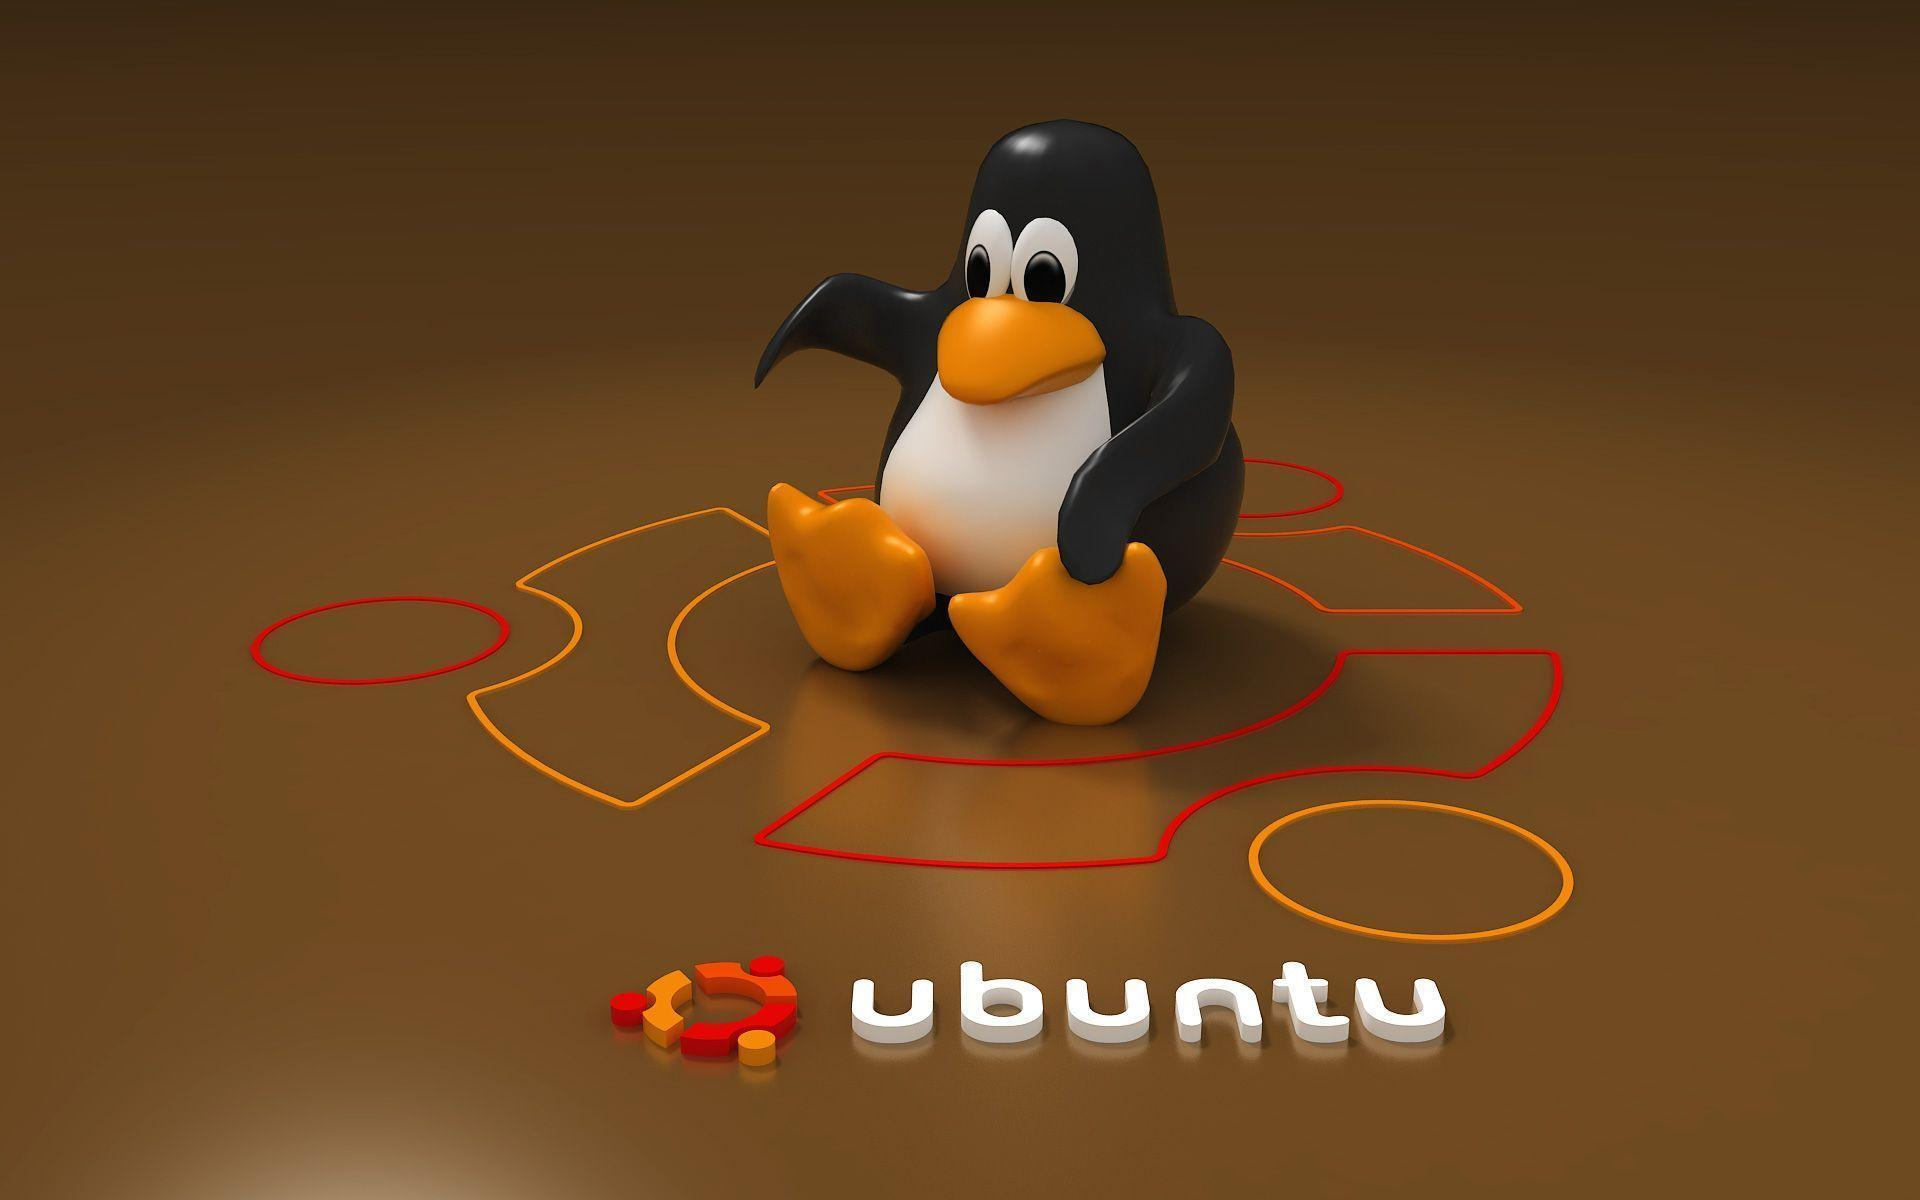 Ubuntu HD Wallpapers